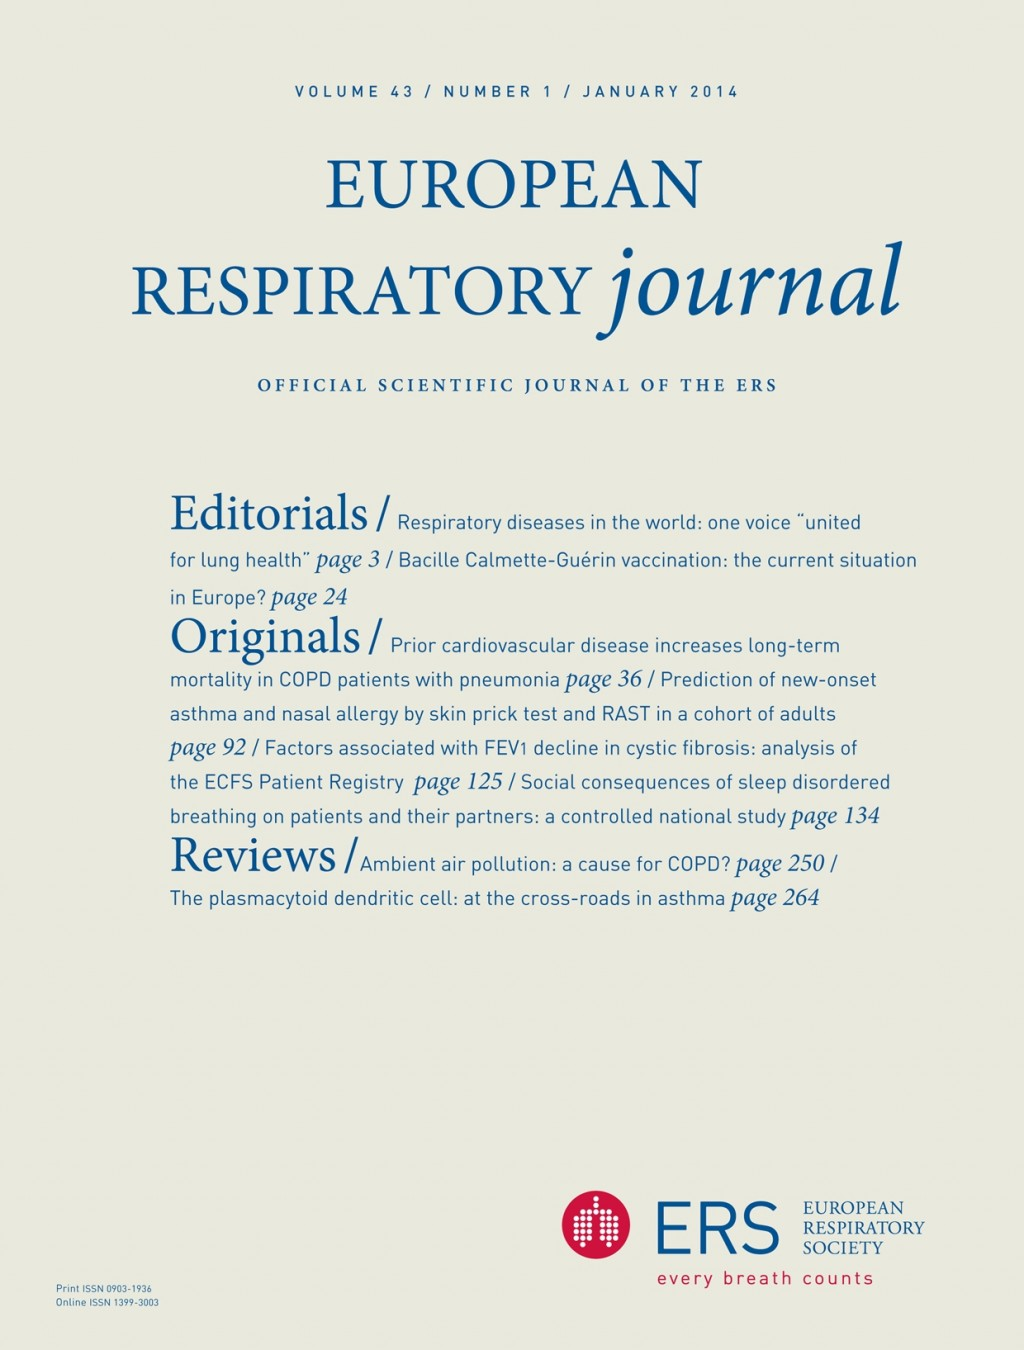 017 Essay On Respiratory Diseases Example Cover Fascinating Large